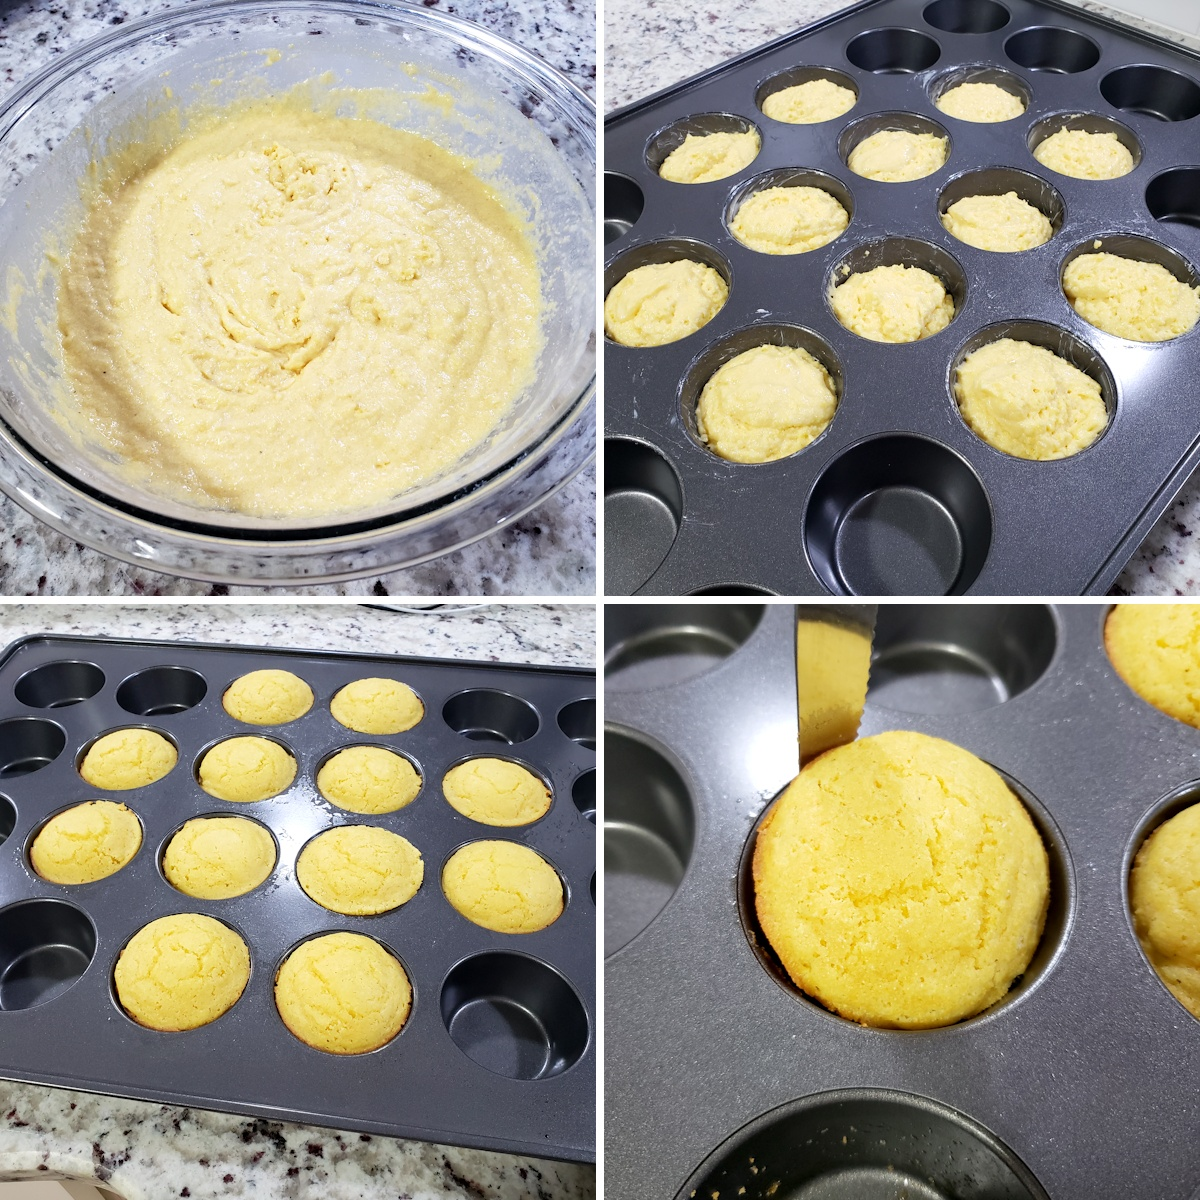 Mixing muffin batter and dividing into a muffin pan.